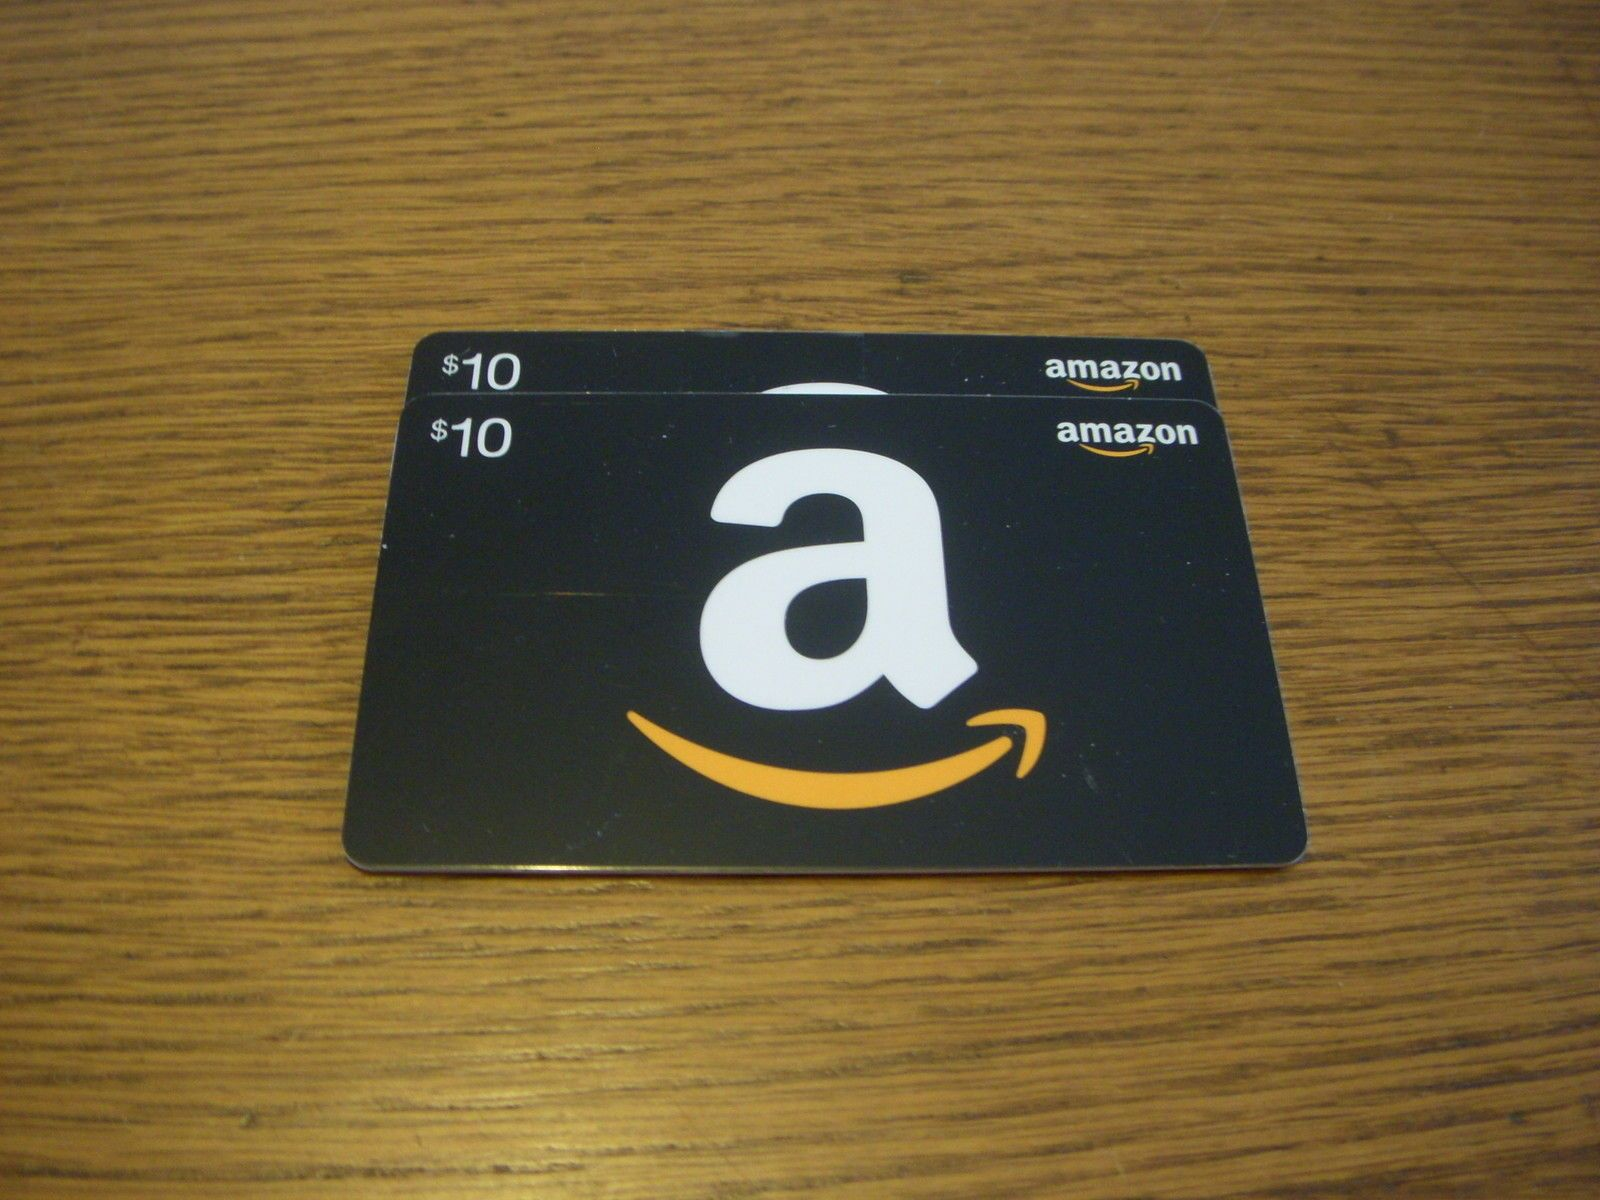 1000 amazon gift card httpspinterestpin 1000 amazon gift card httpspinterestpin502784745883206804 free amazon codesfree amazon gift cardfree amazon gift card codesfree amazon negle Gallery